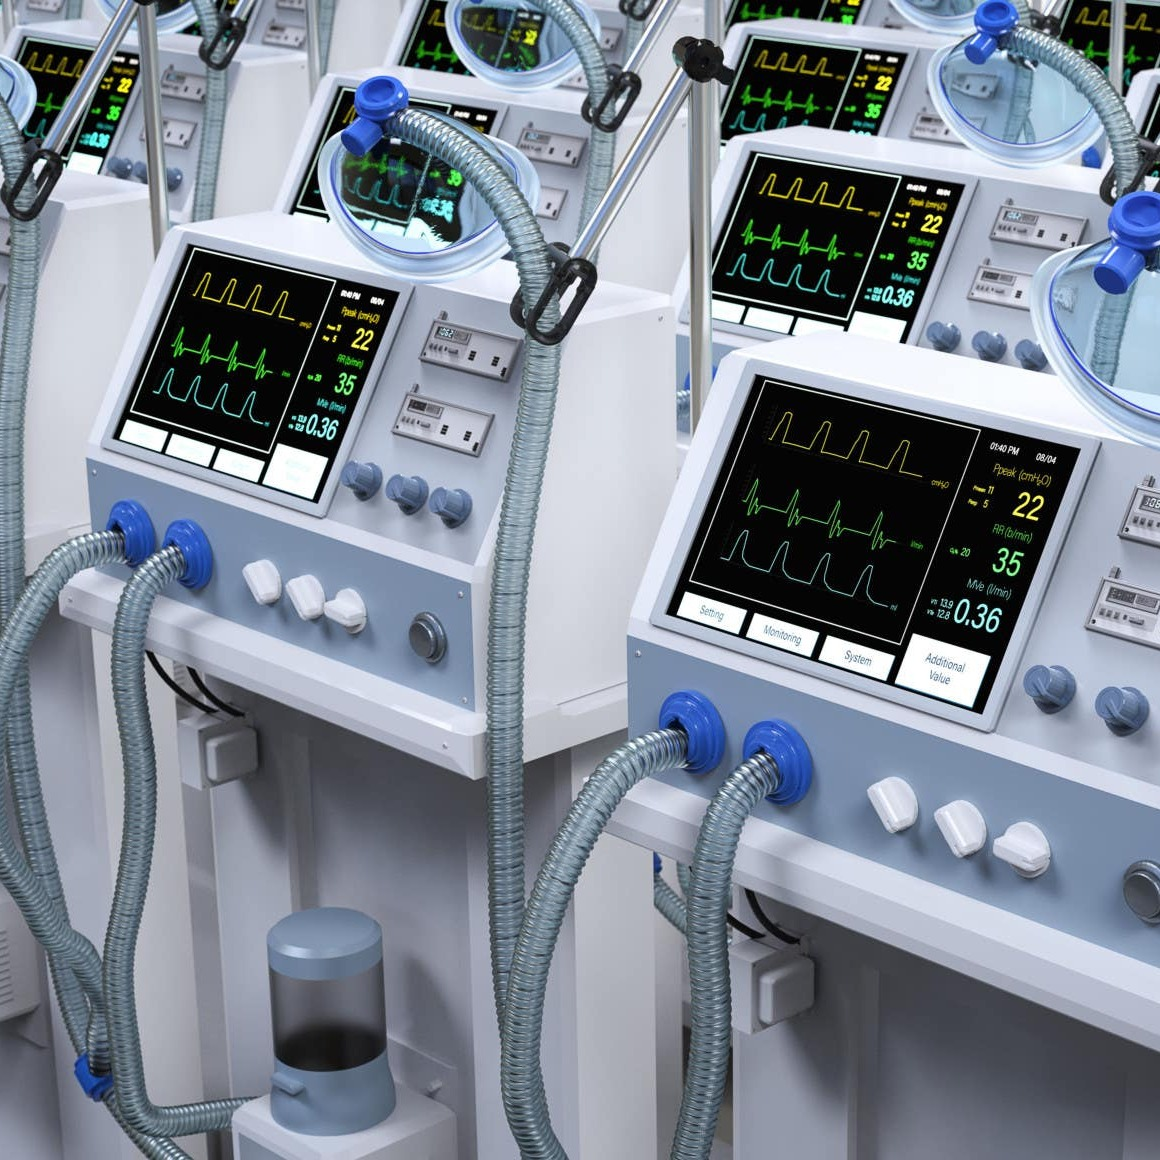 medical-devices-software-erp-sap